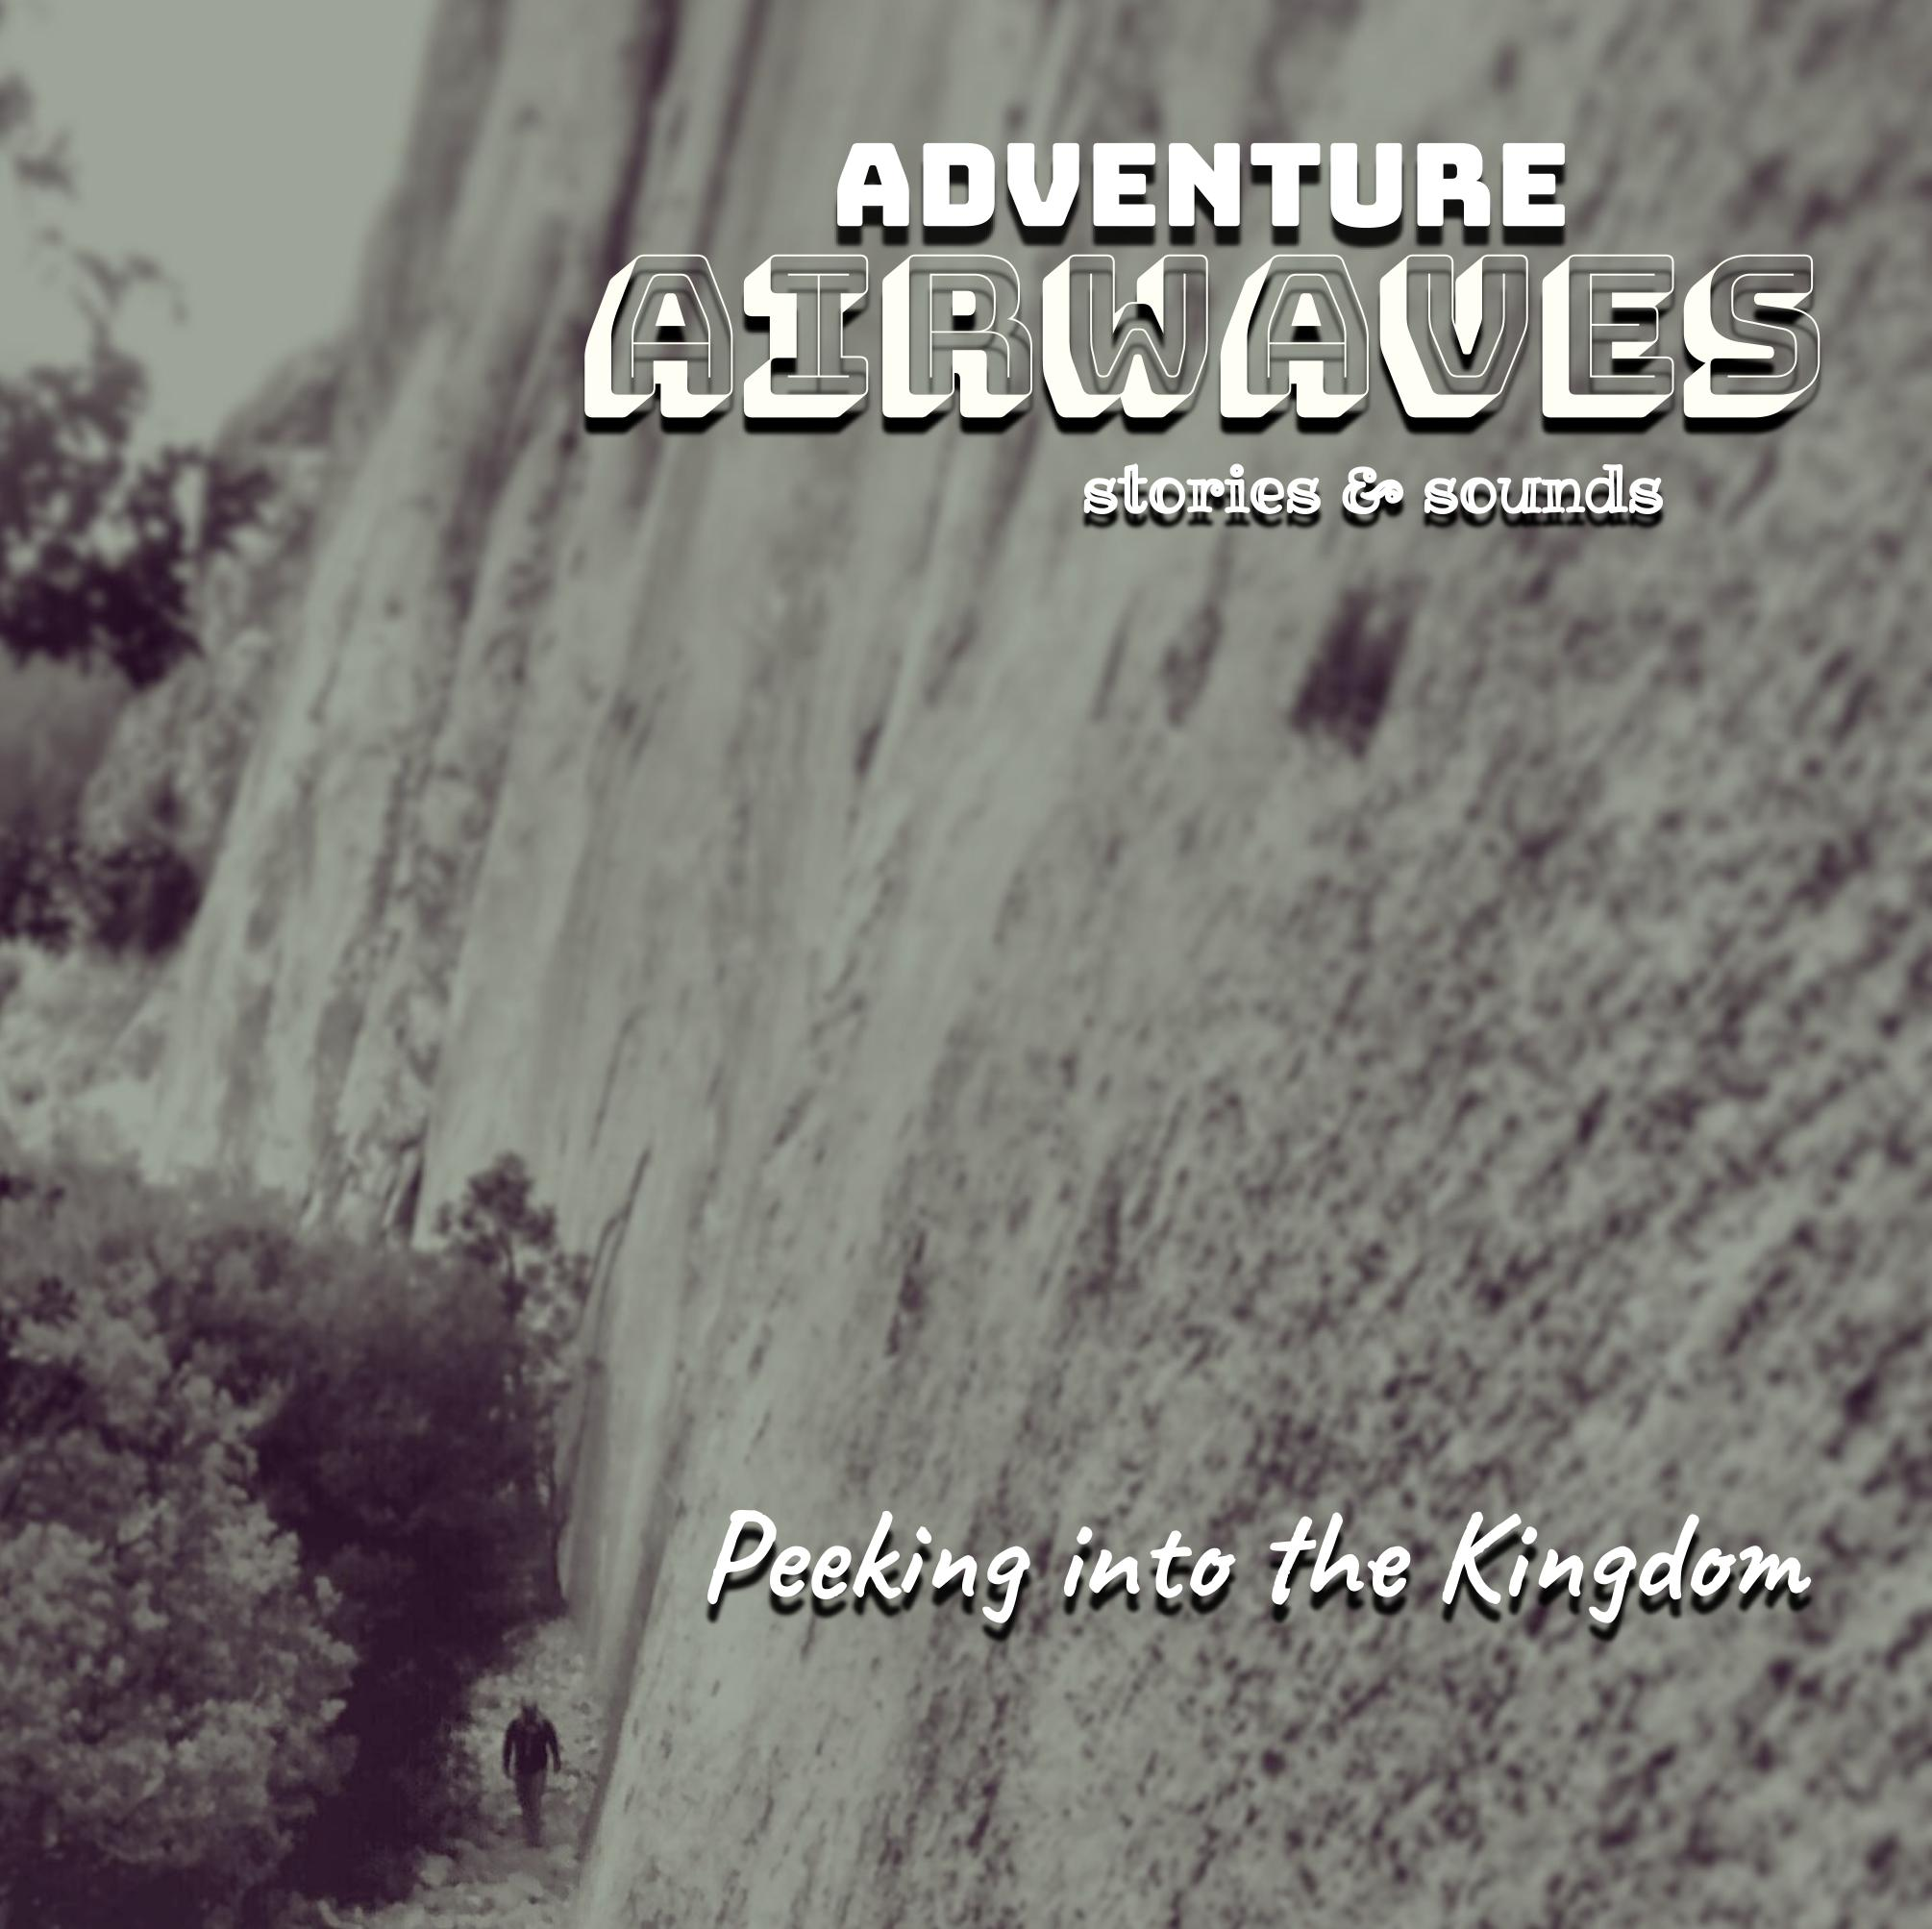 Peeking into the Kingdom: A Story About Rock Climbing El Capitan's East Buttress in Yosemite, Piss Ants, and Fatherhood